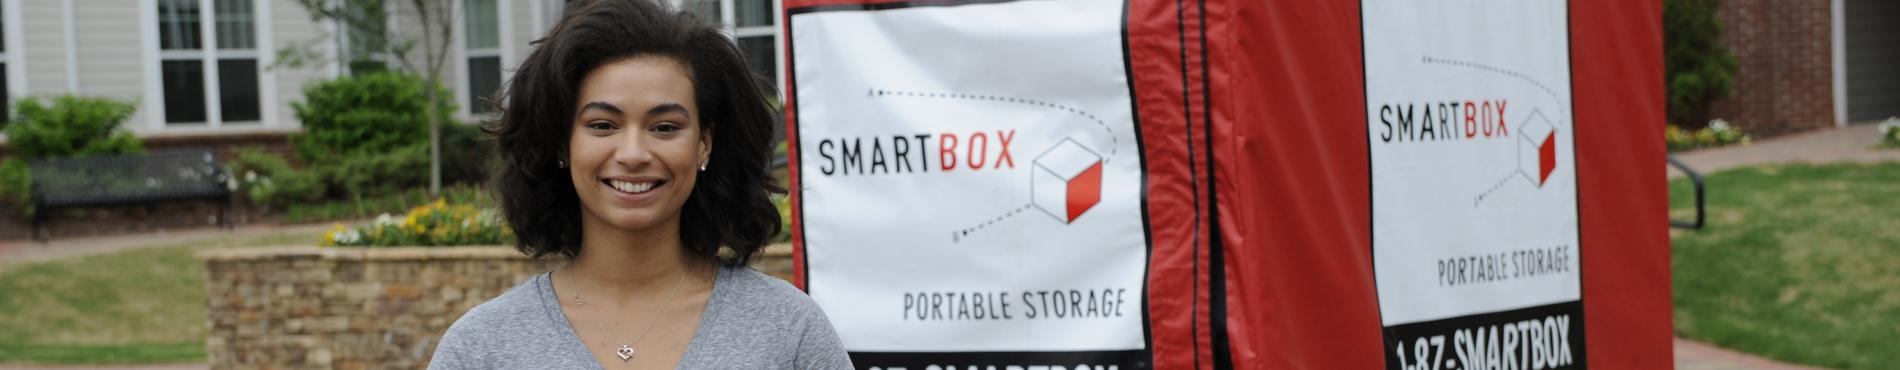 370 Header Girl  sc 1 st  SmartBox & Northern Virginia Portable Storage Units u0026 Moving Containers